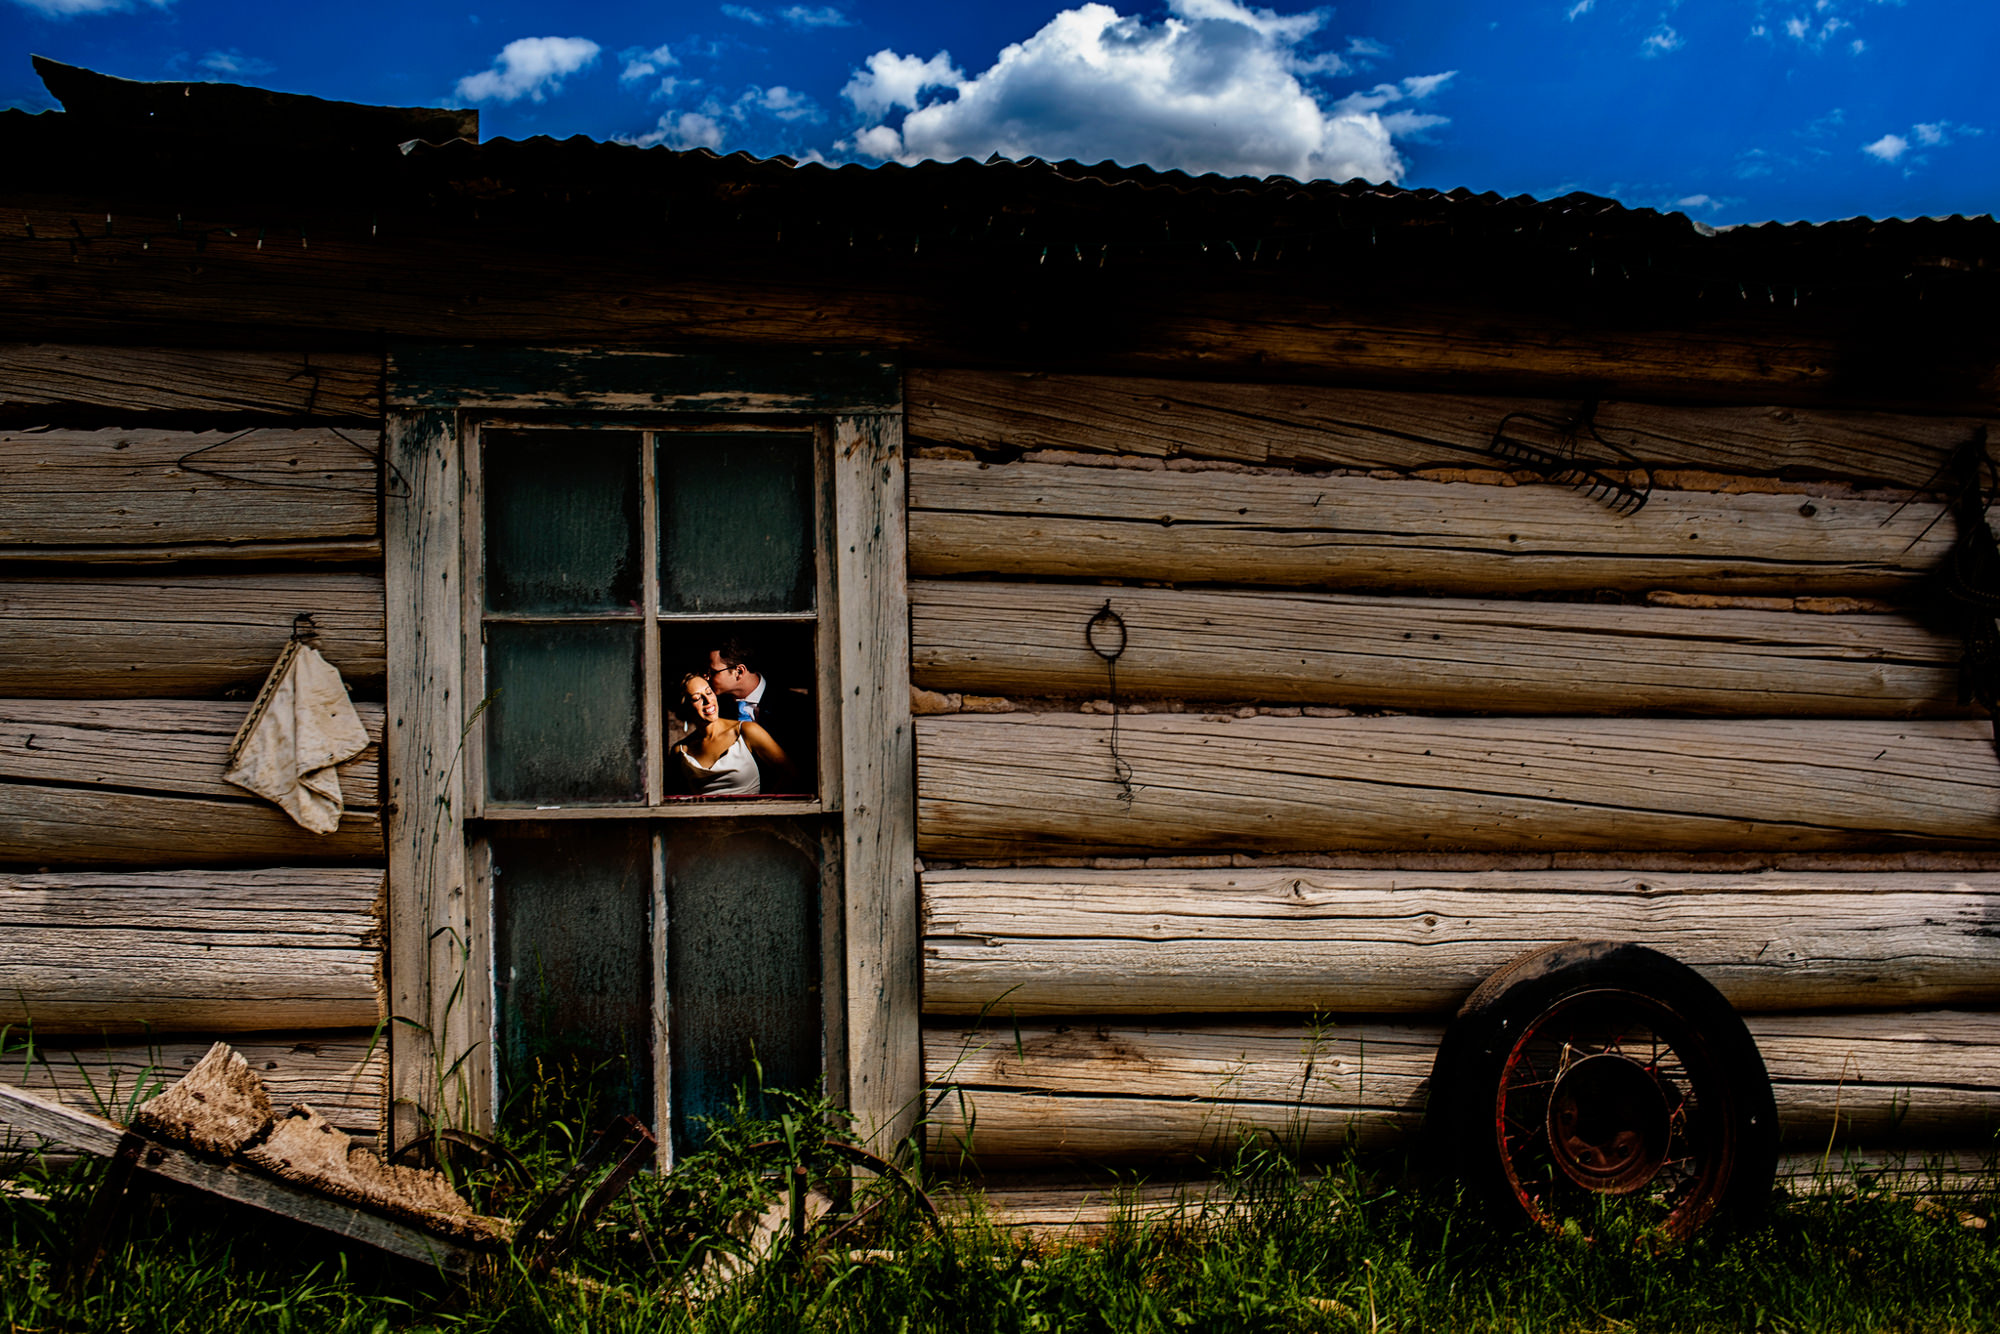 bride-and-groom-portrait-in-window-from-outside-worlds-best-wedding-photos-chrismans-south-carolina-wedding-photographers